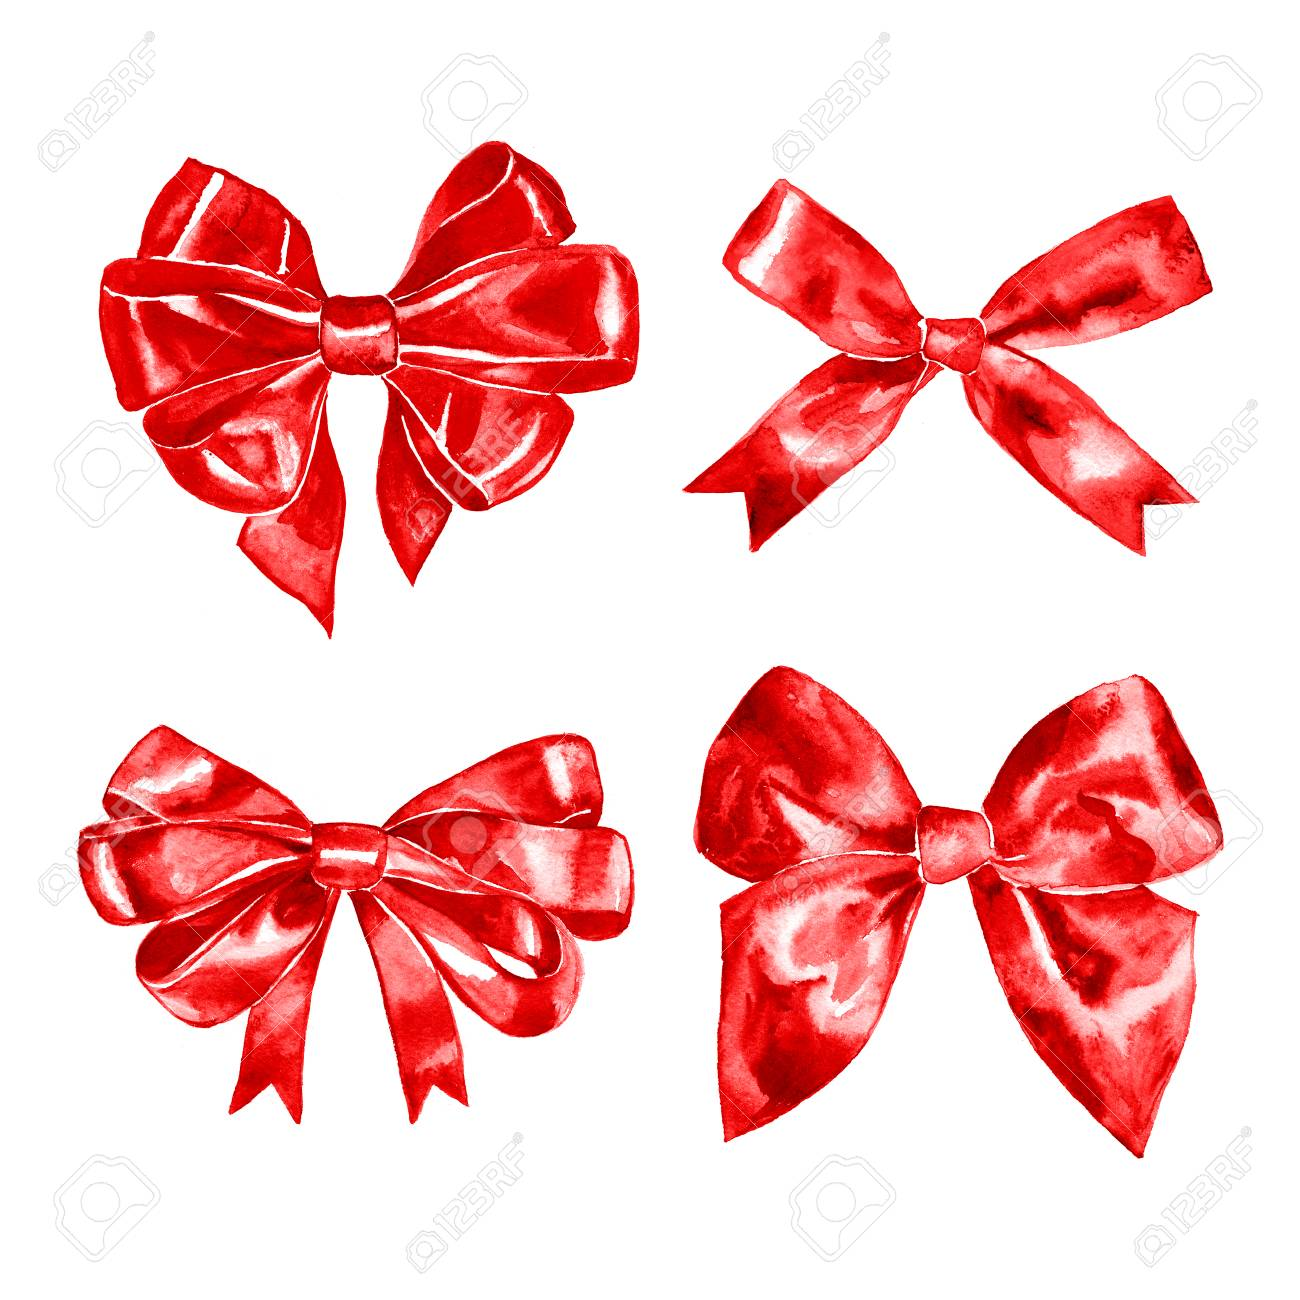 1300x1300 Set Of Watercolor Drawing Red Bows With Paint Stains, Hand Drawn